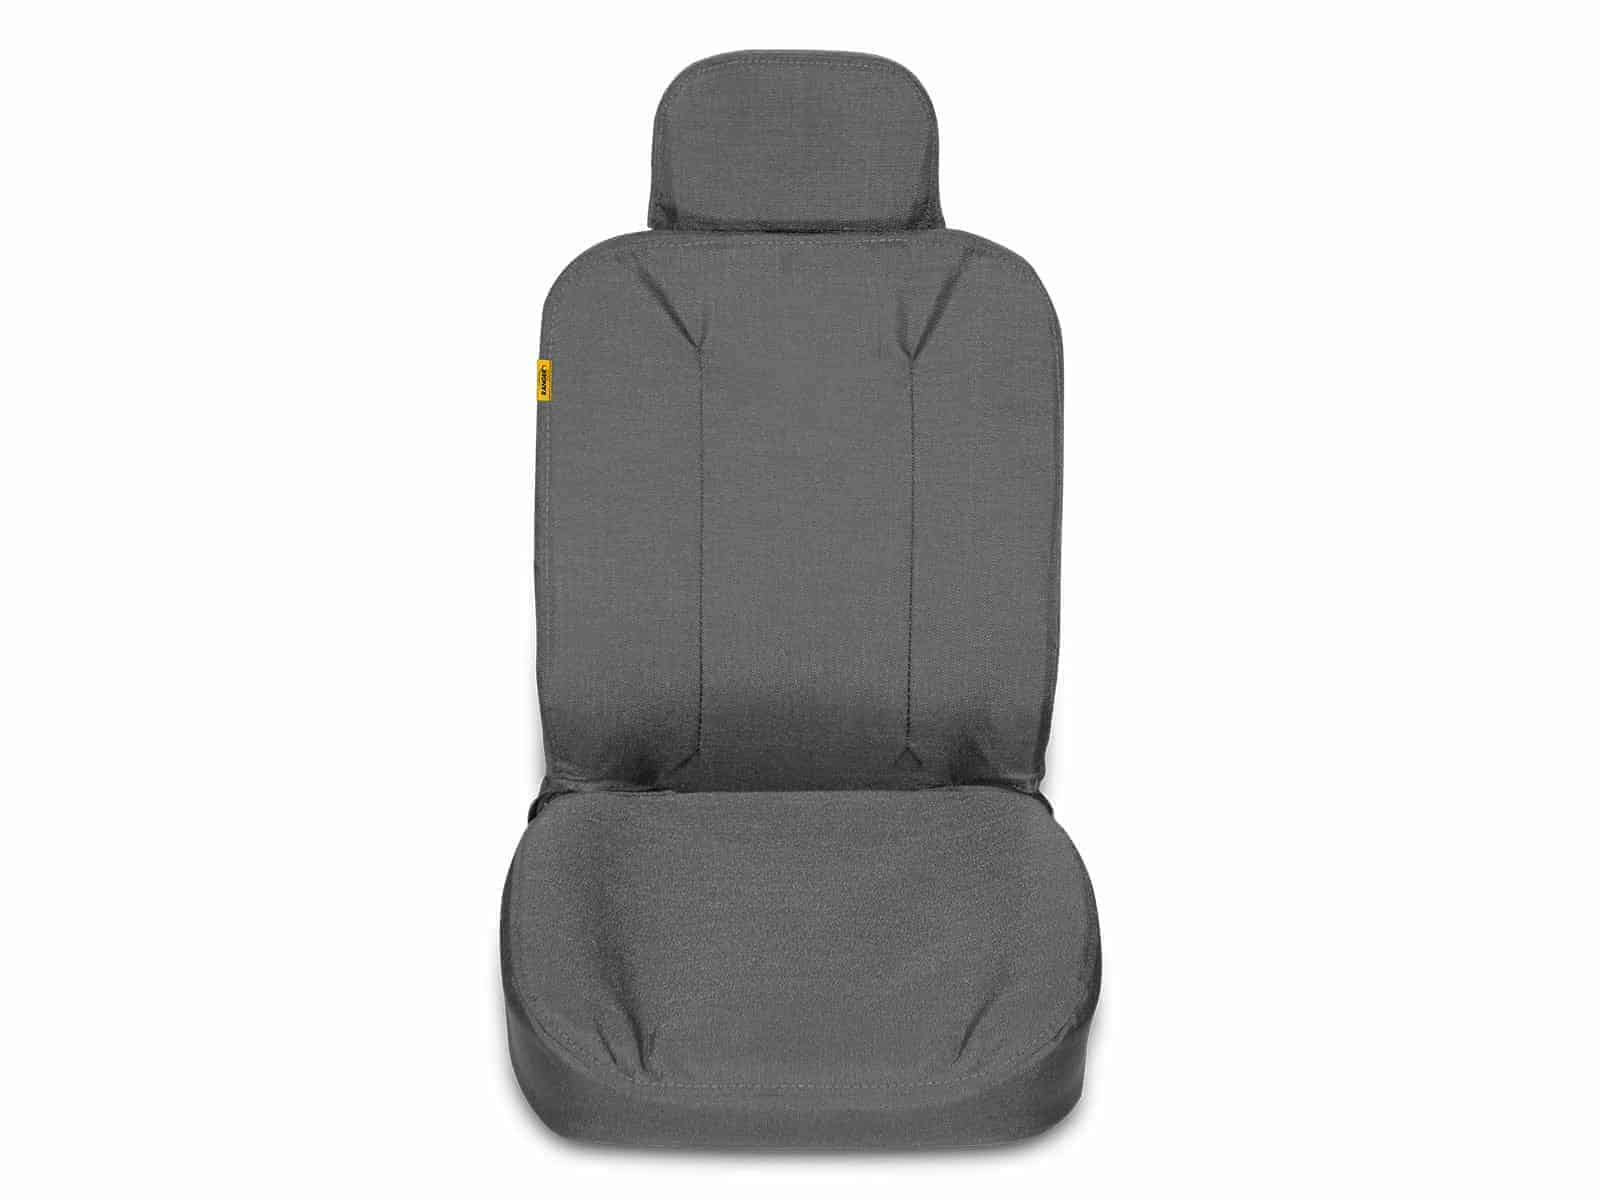 Metris Van Seat Covers, #6258